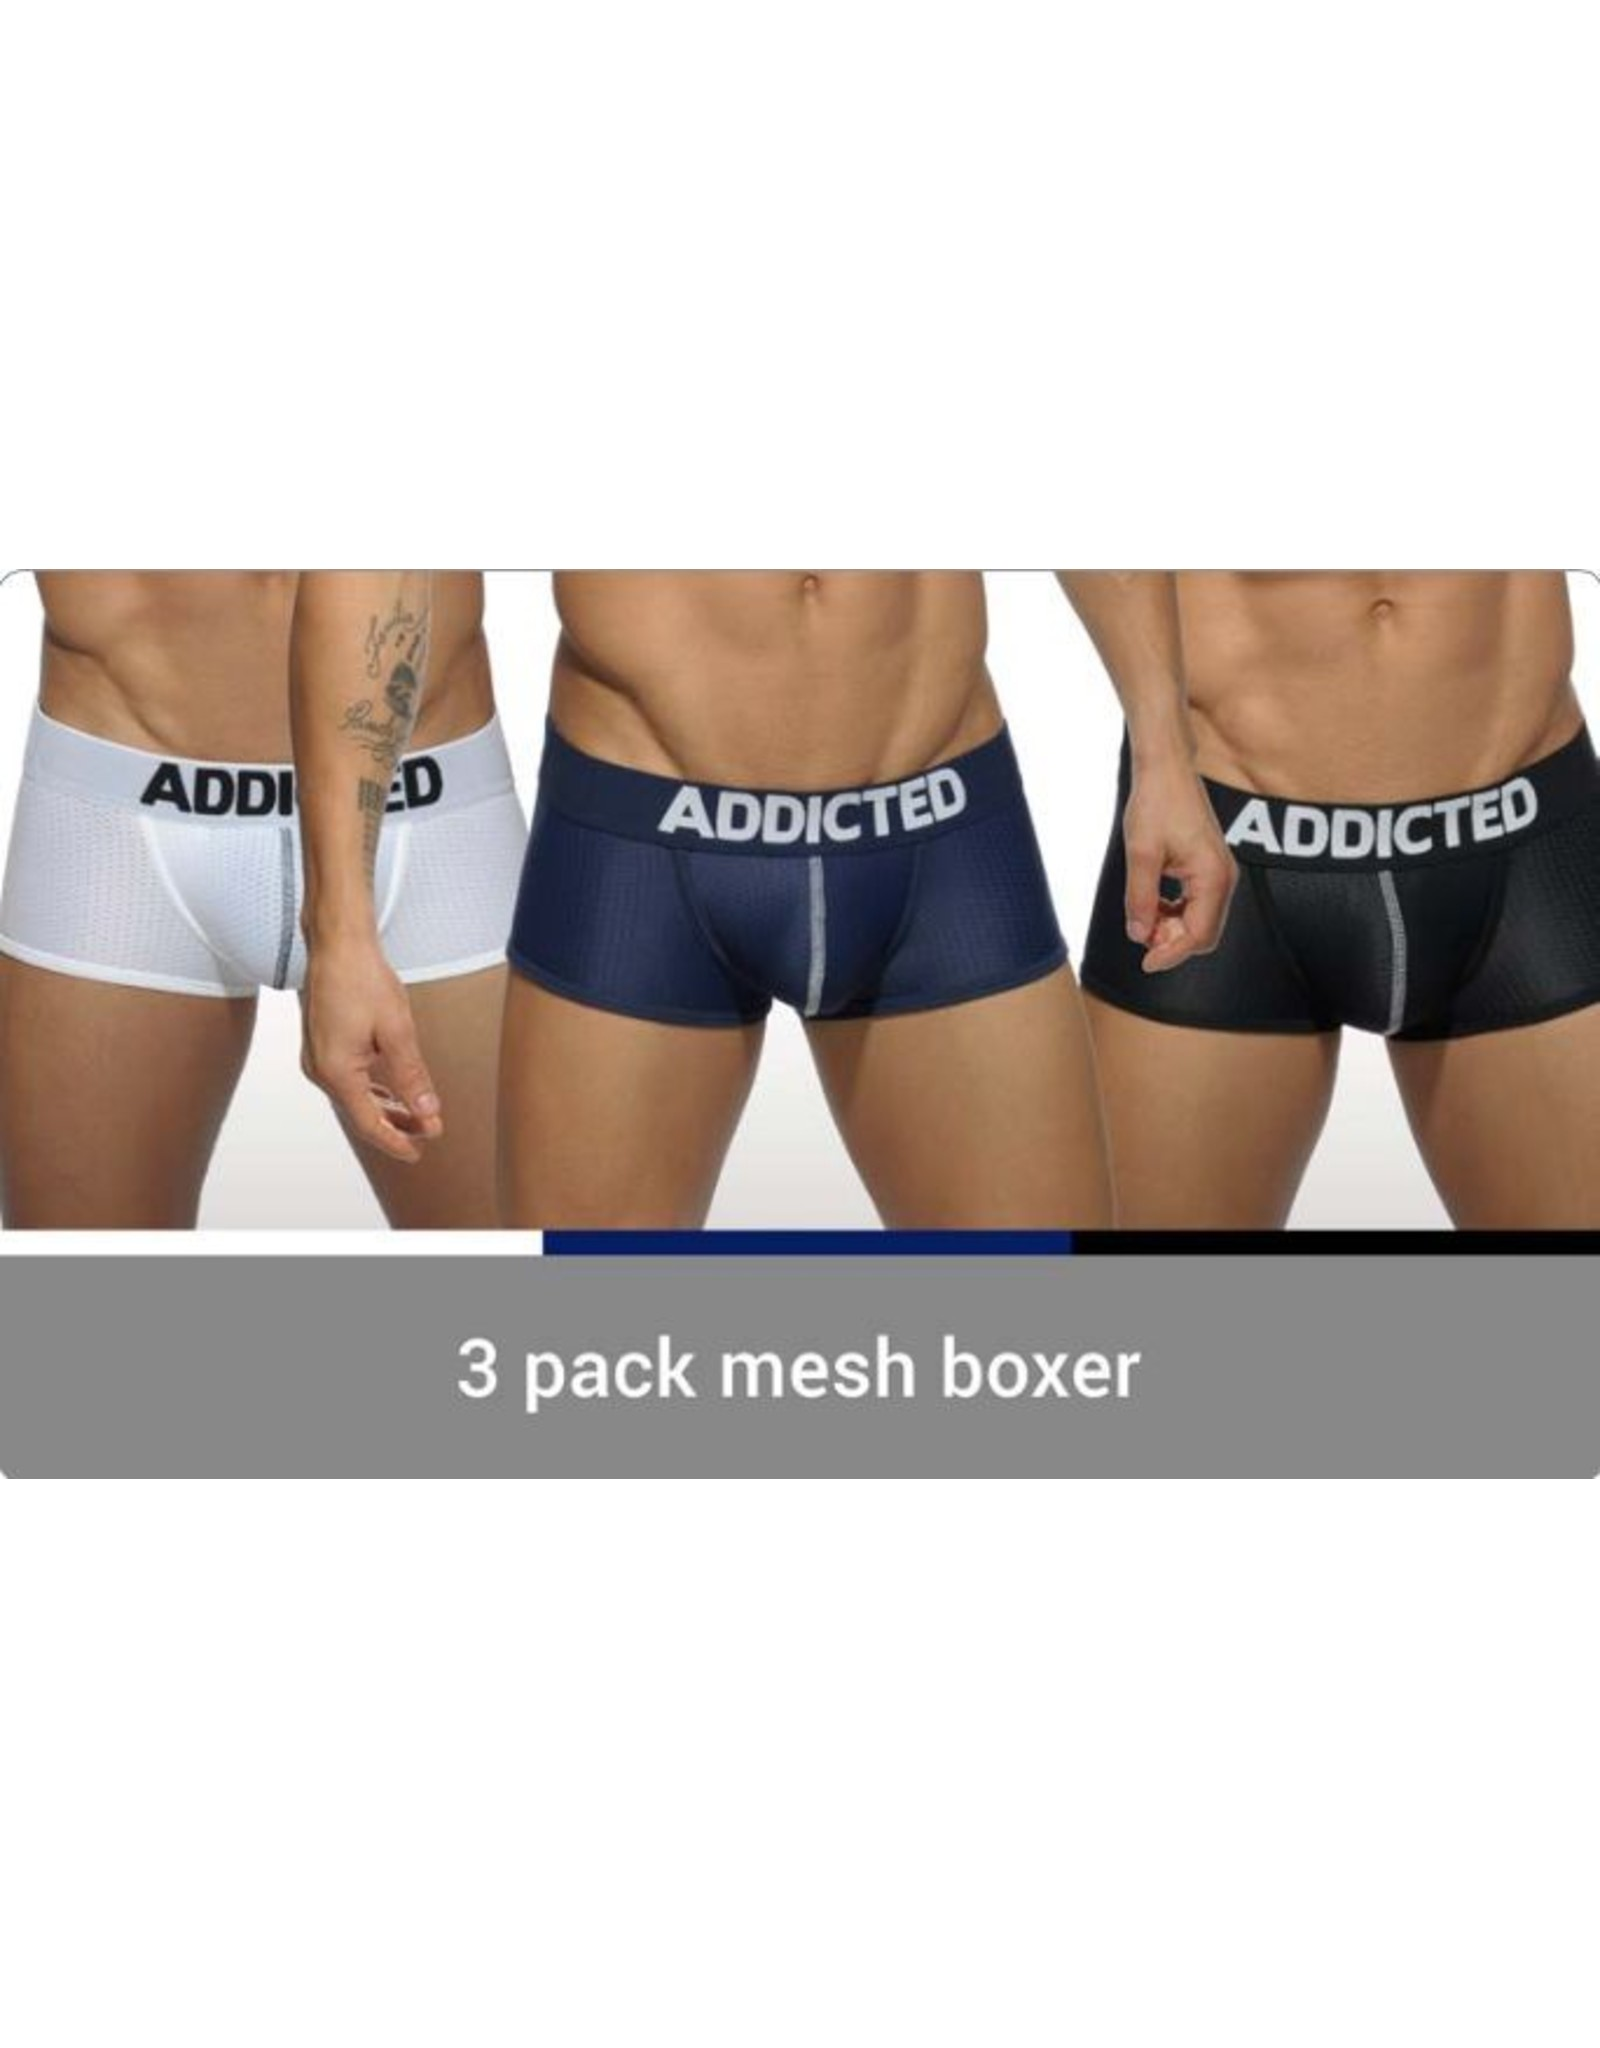 Addicted ADDICTED 3 Pack Mesh Boxer Push up